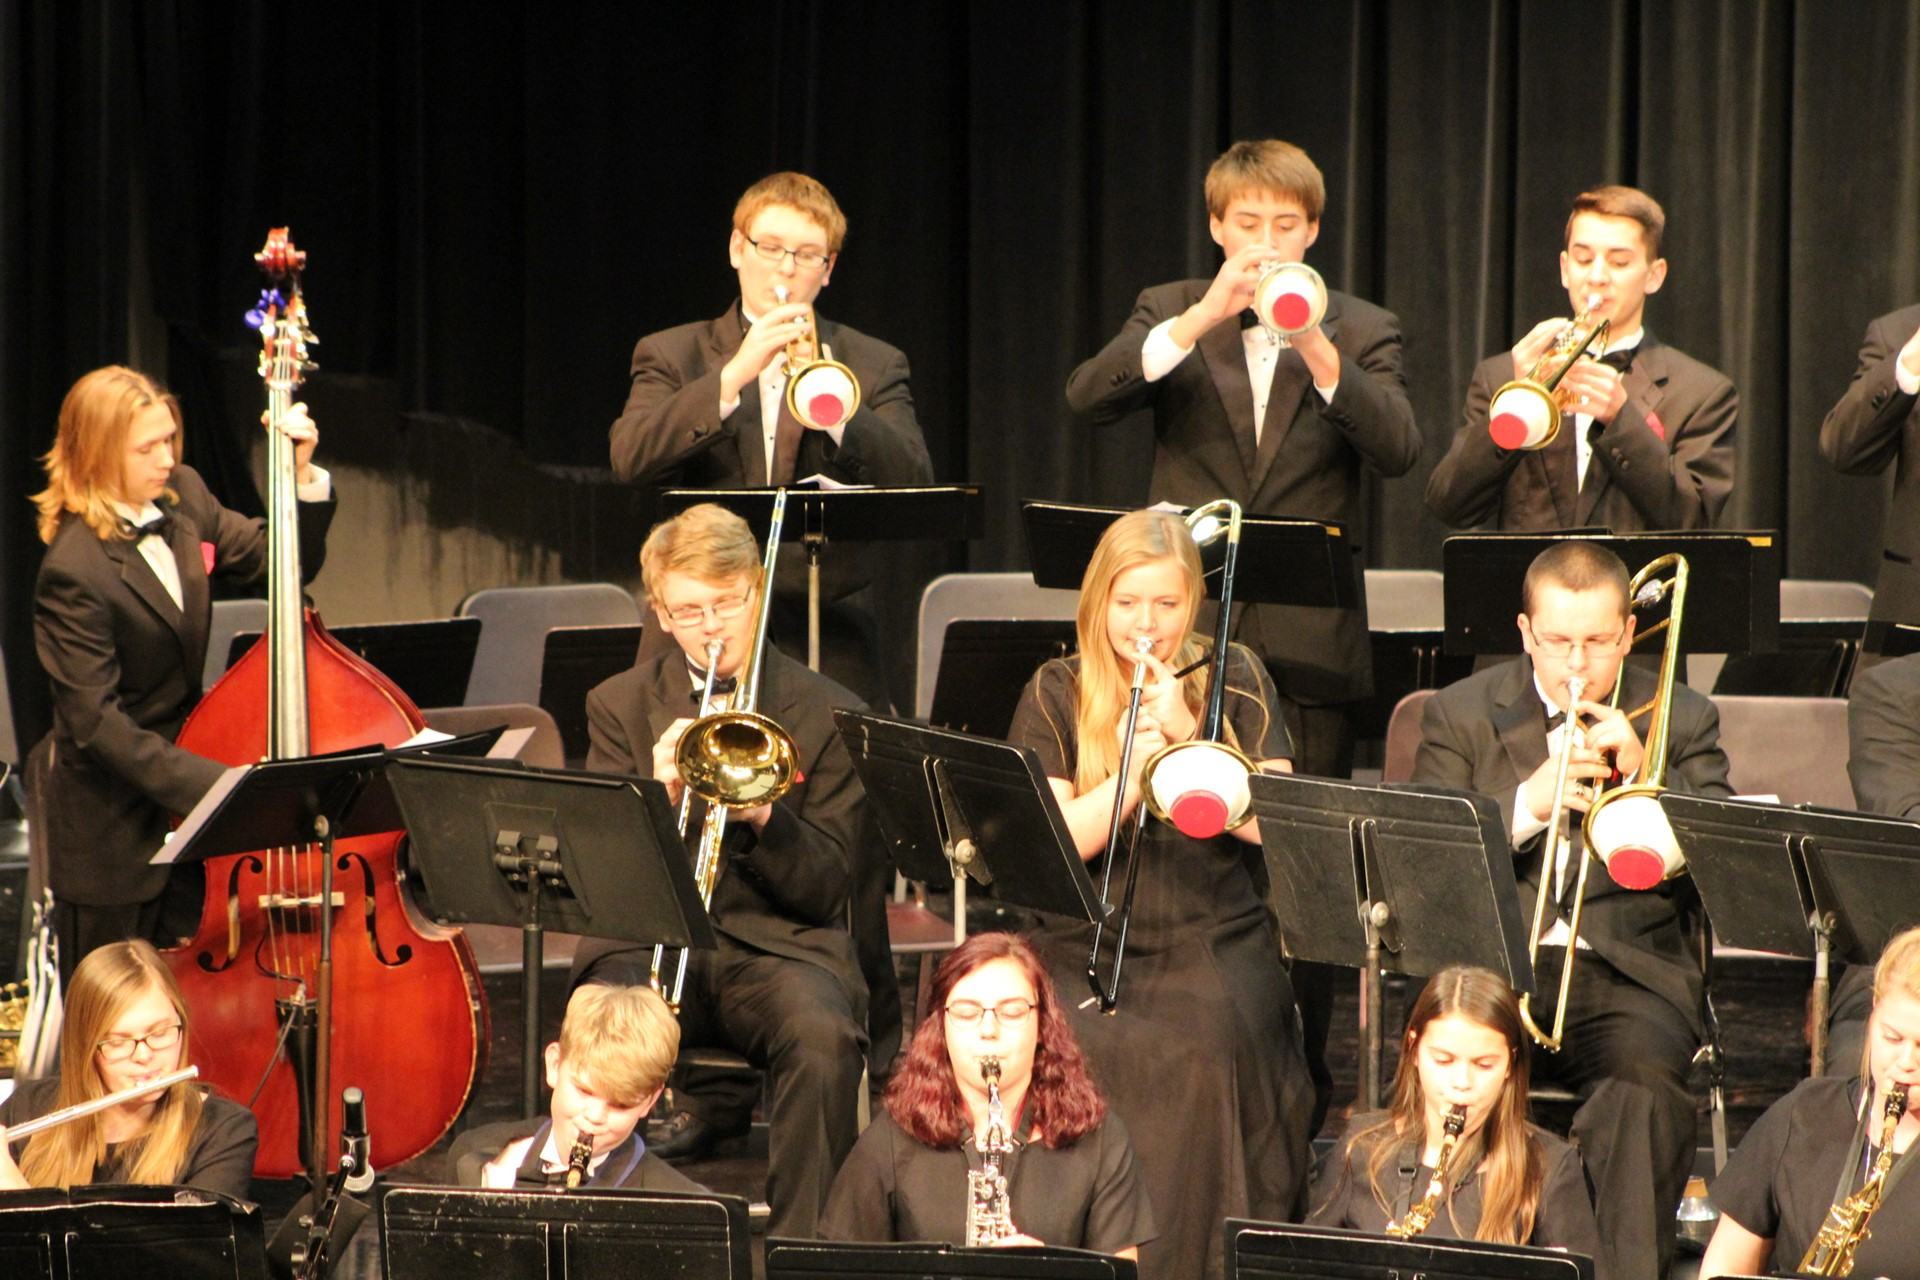 High school jazz band playing on stage